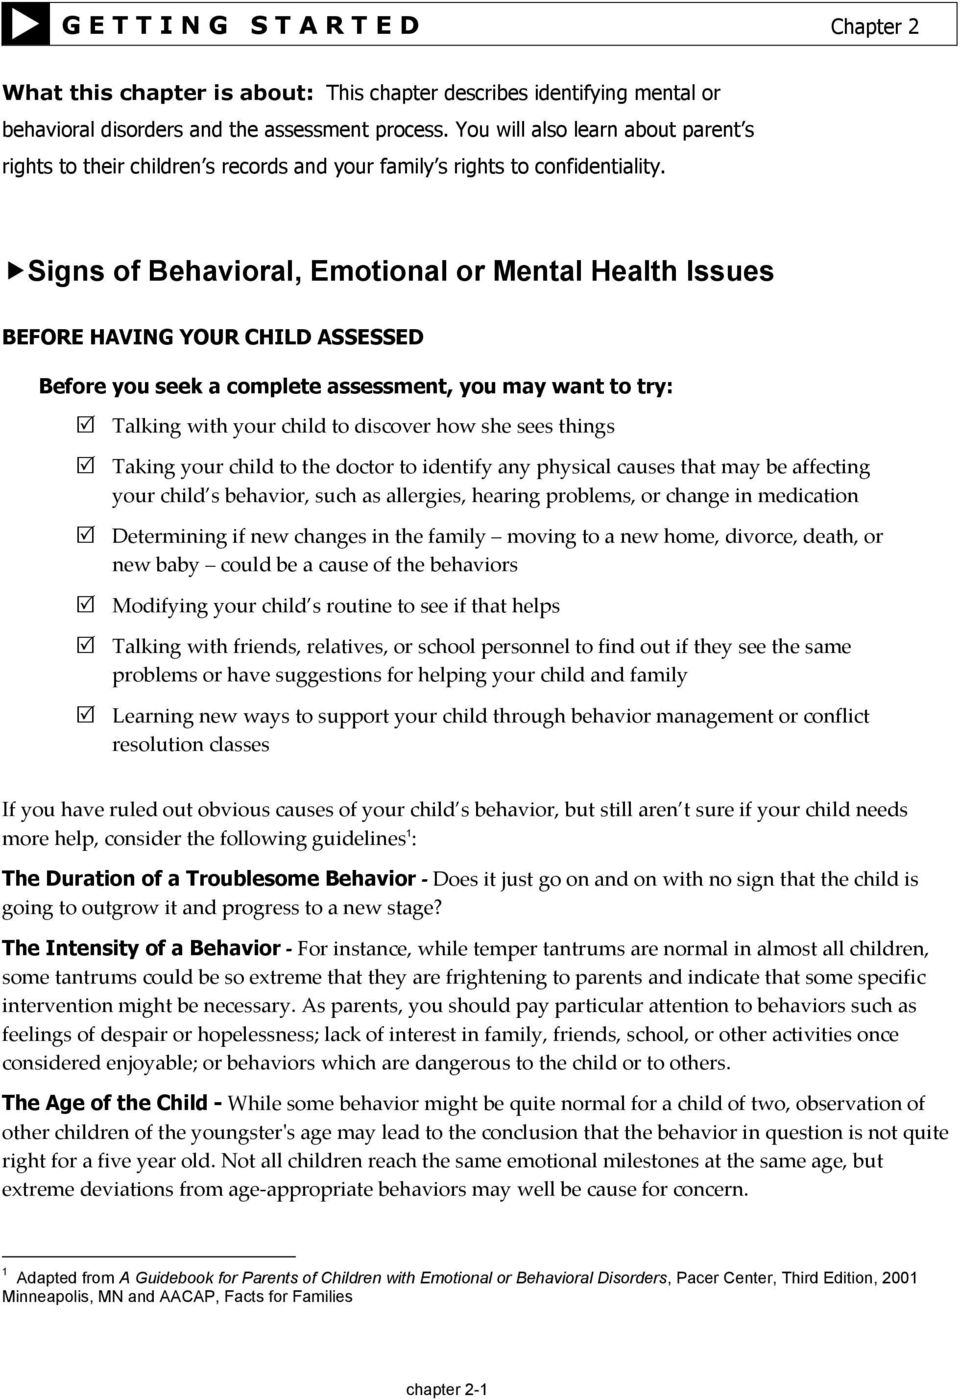 Signs of Behavioral, Emotional or Mental Health Issues BEFORE HAVING YOUR CHILD ASSESSED Before you seek a complete assessment, you may want to try: Talking with your child to discover how she sees